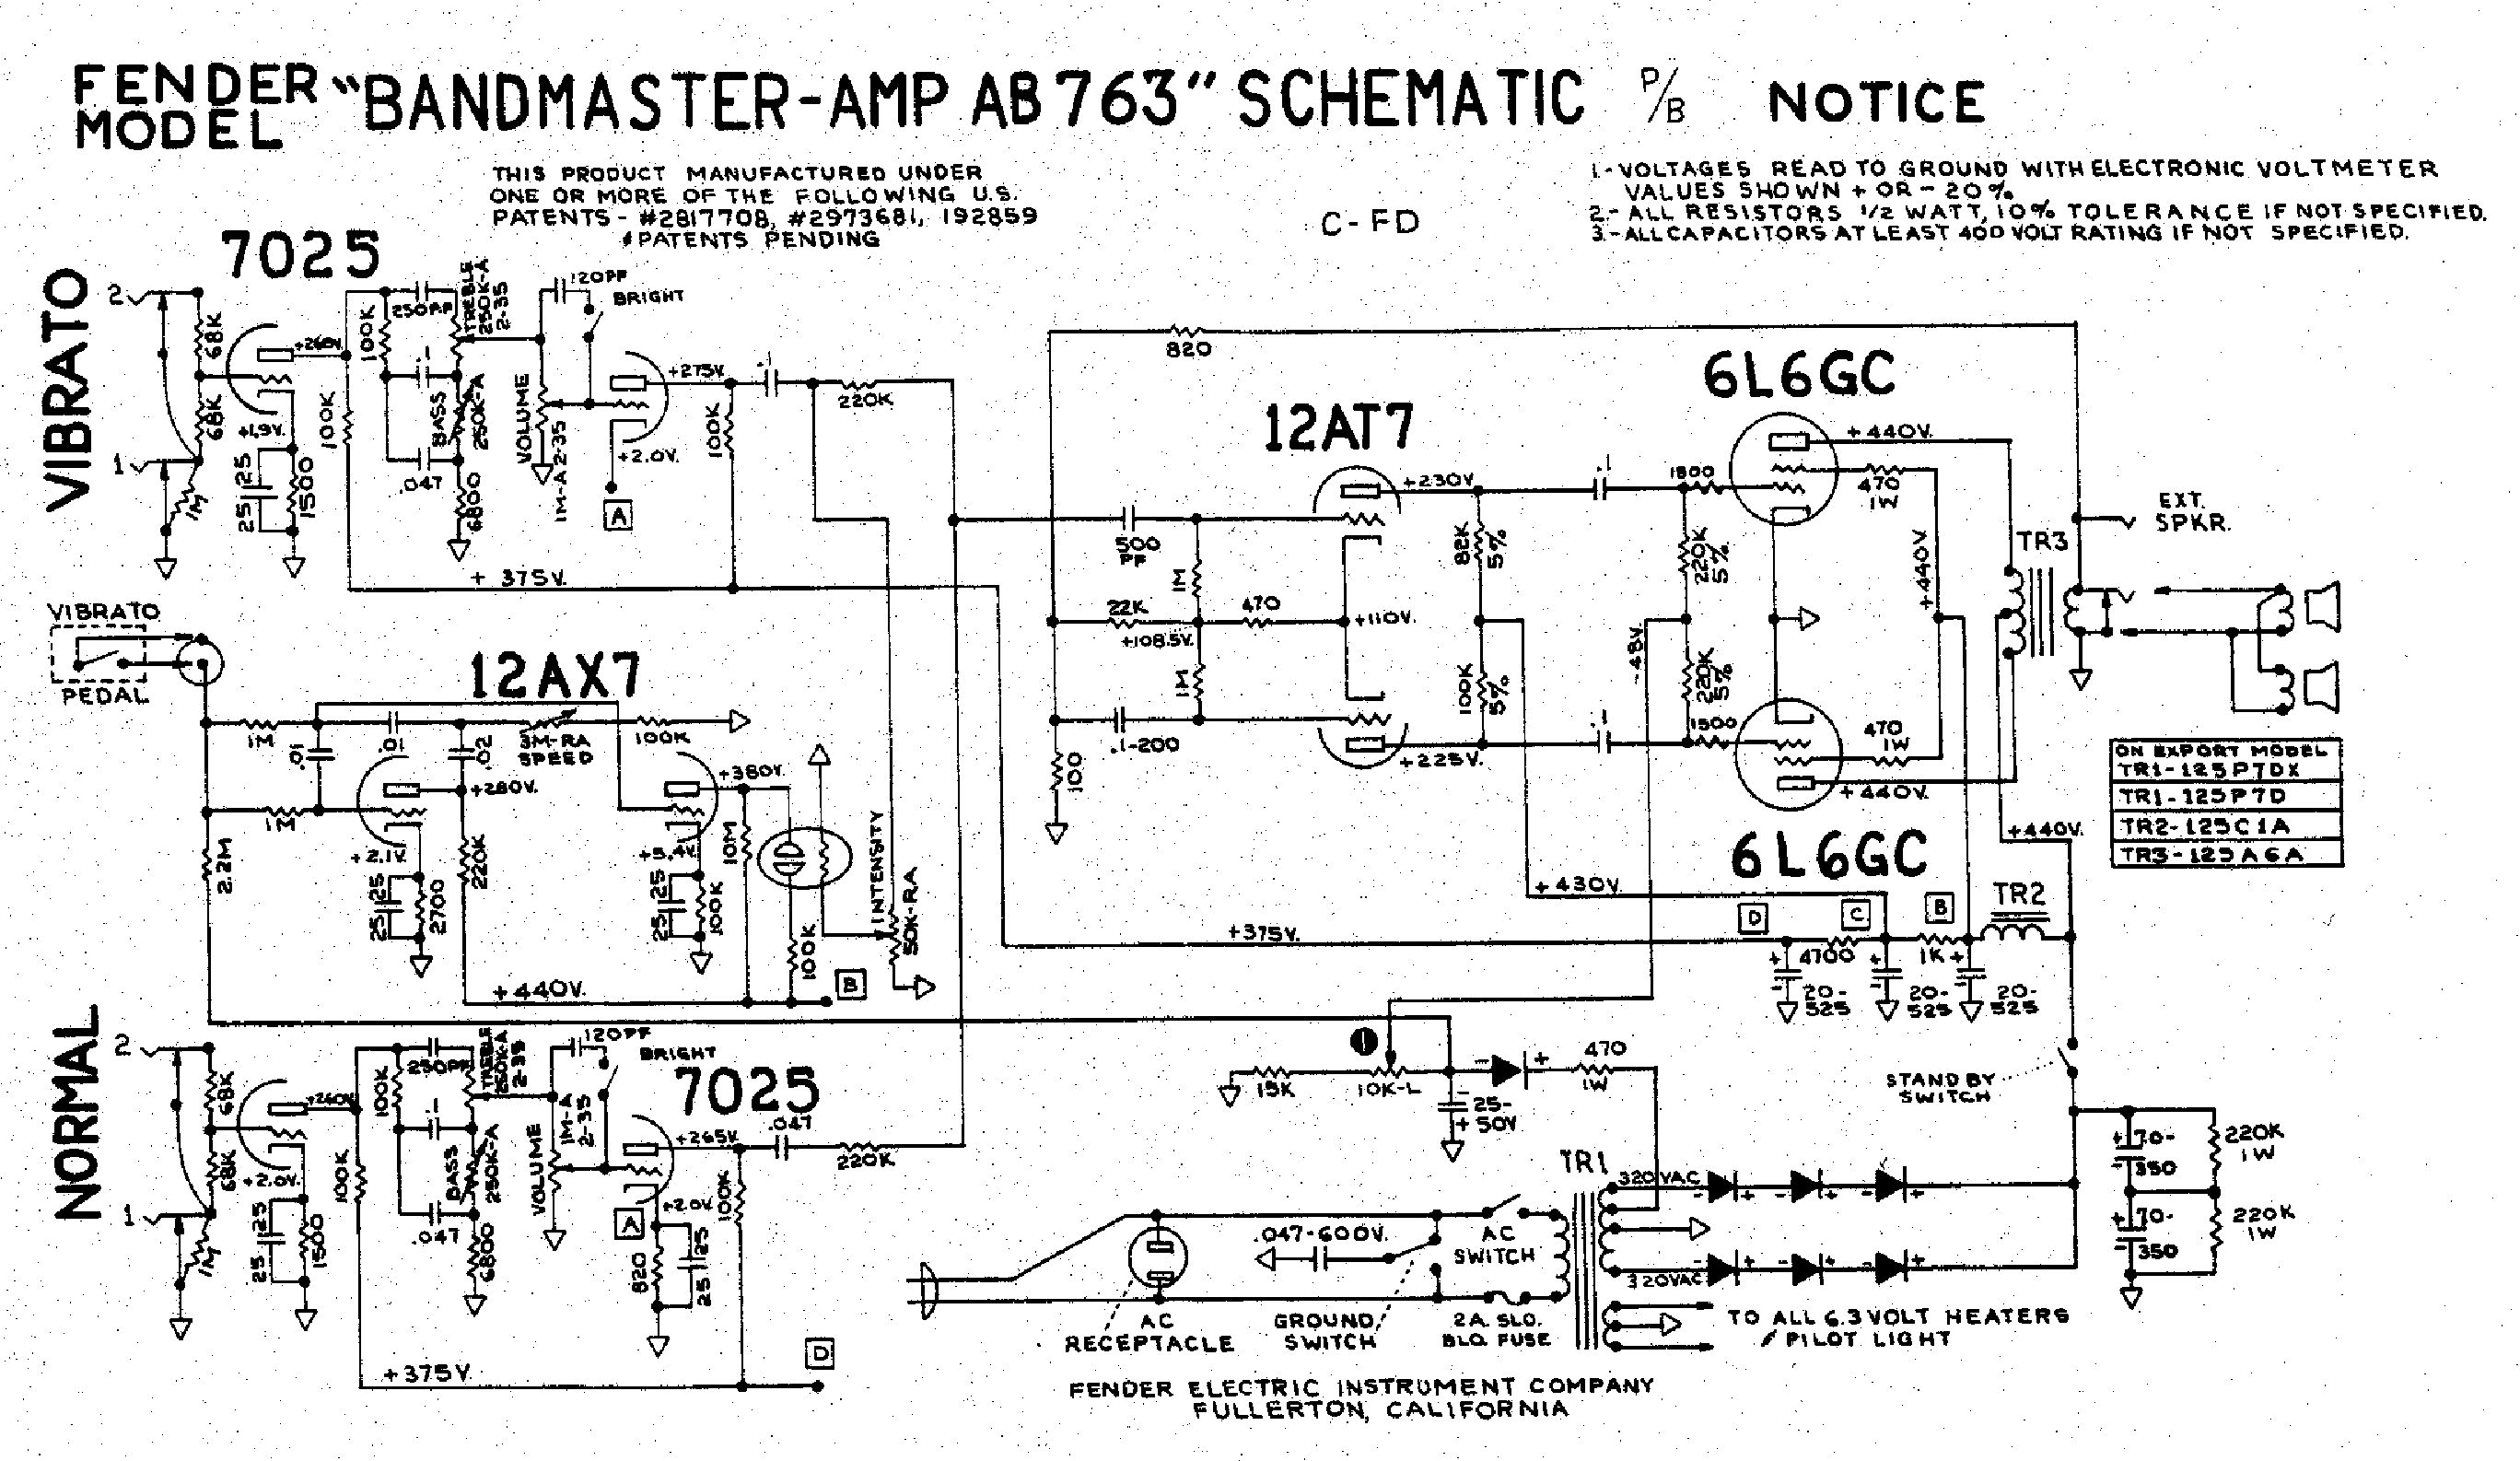 FENDER BANDMASTER-AB763 Service Manual download, schematics, eeprom on peavey reverb schematic, piping and instrumentation diagram, champ schematic, 5e3 schematic, twin reverb schematic, one-line diagram, technical drawing, functional flow block diagram, tube map, bassman schematic, circuit diagram, super reverb schematic, block diagram,